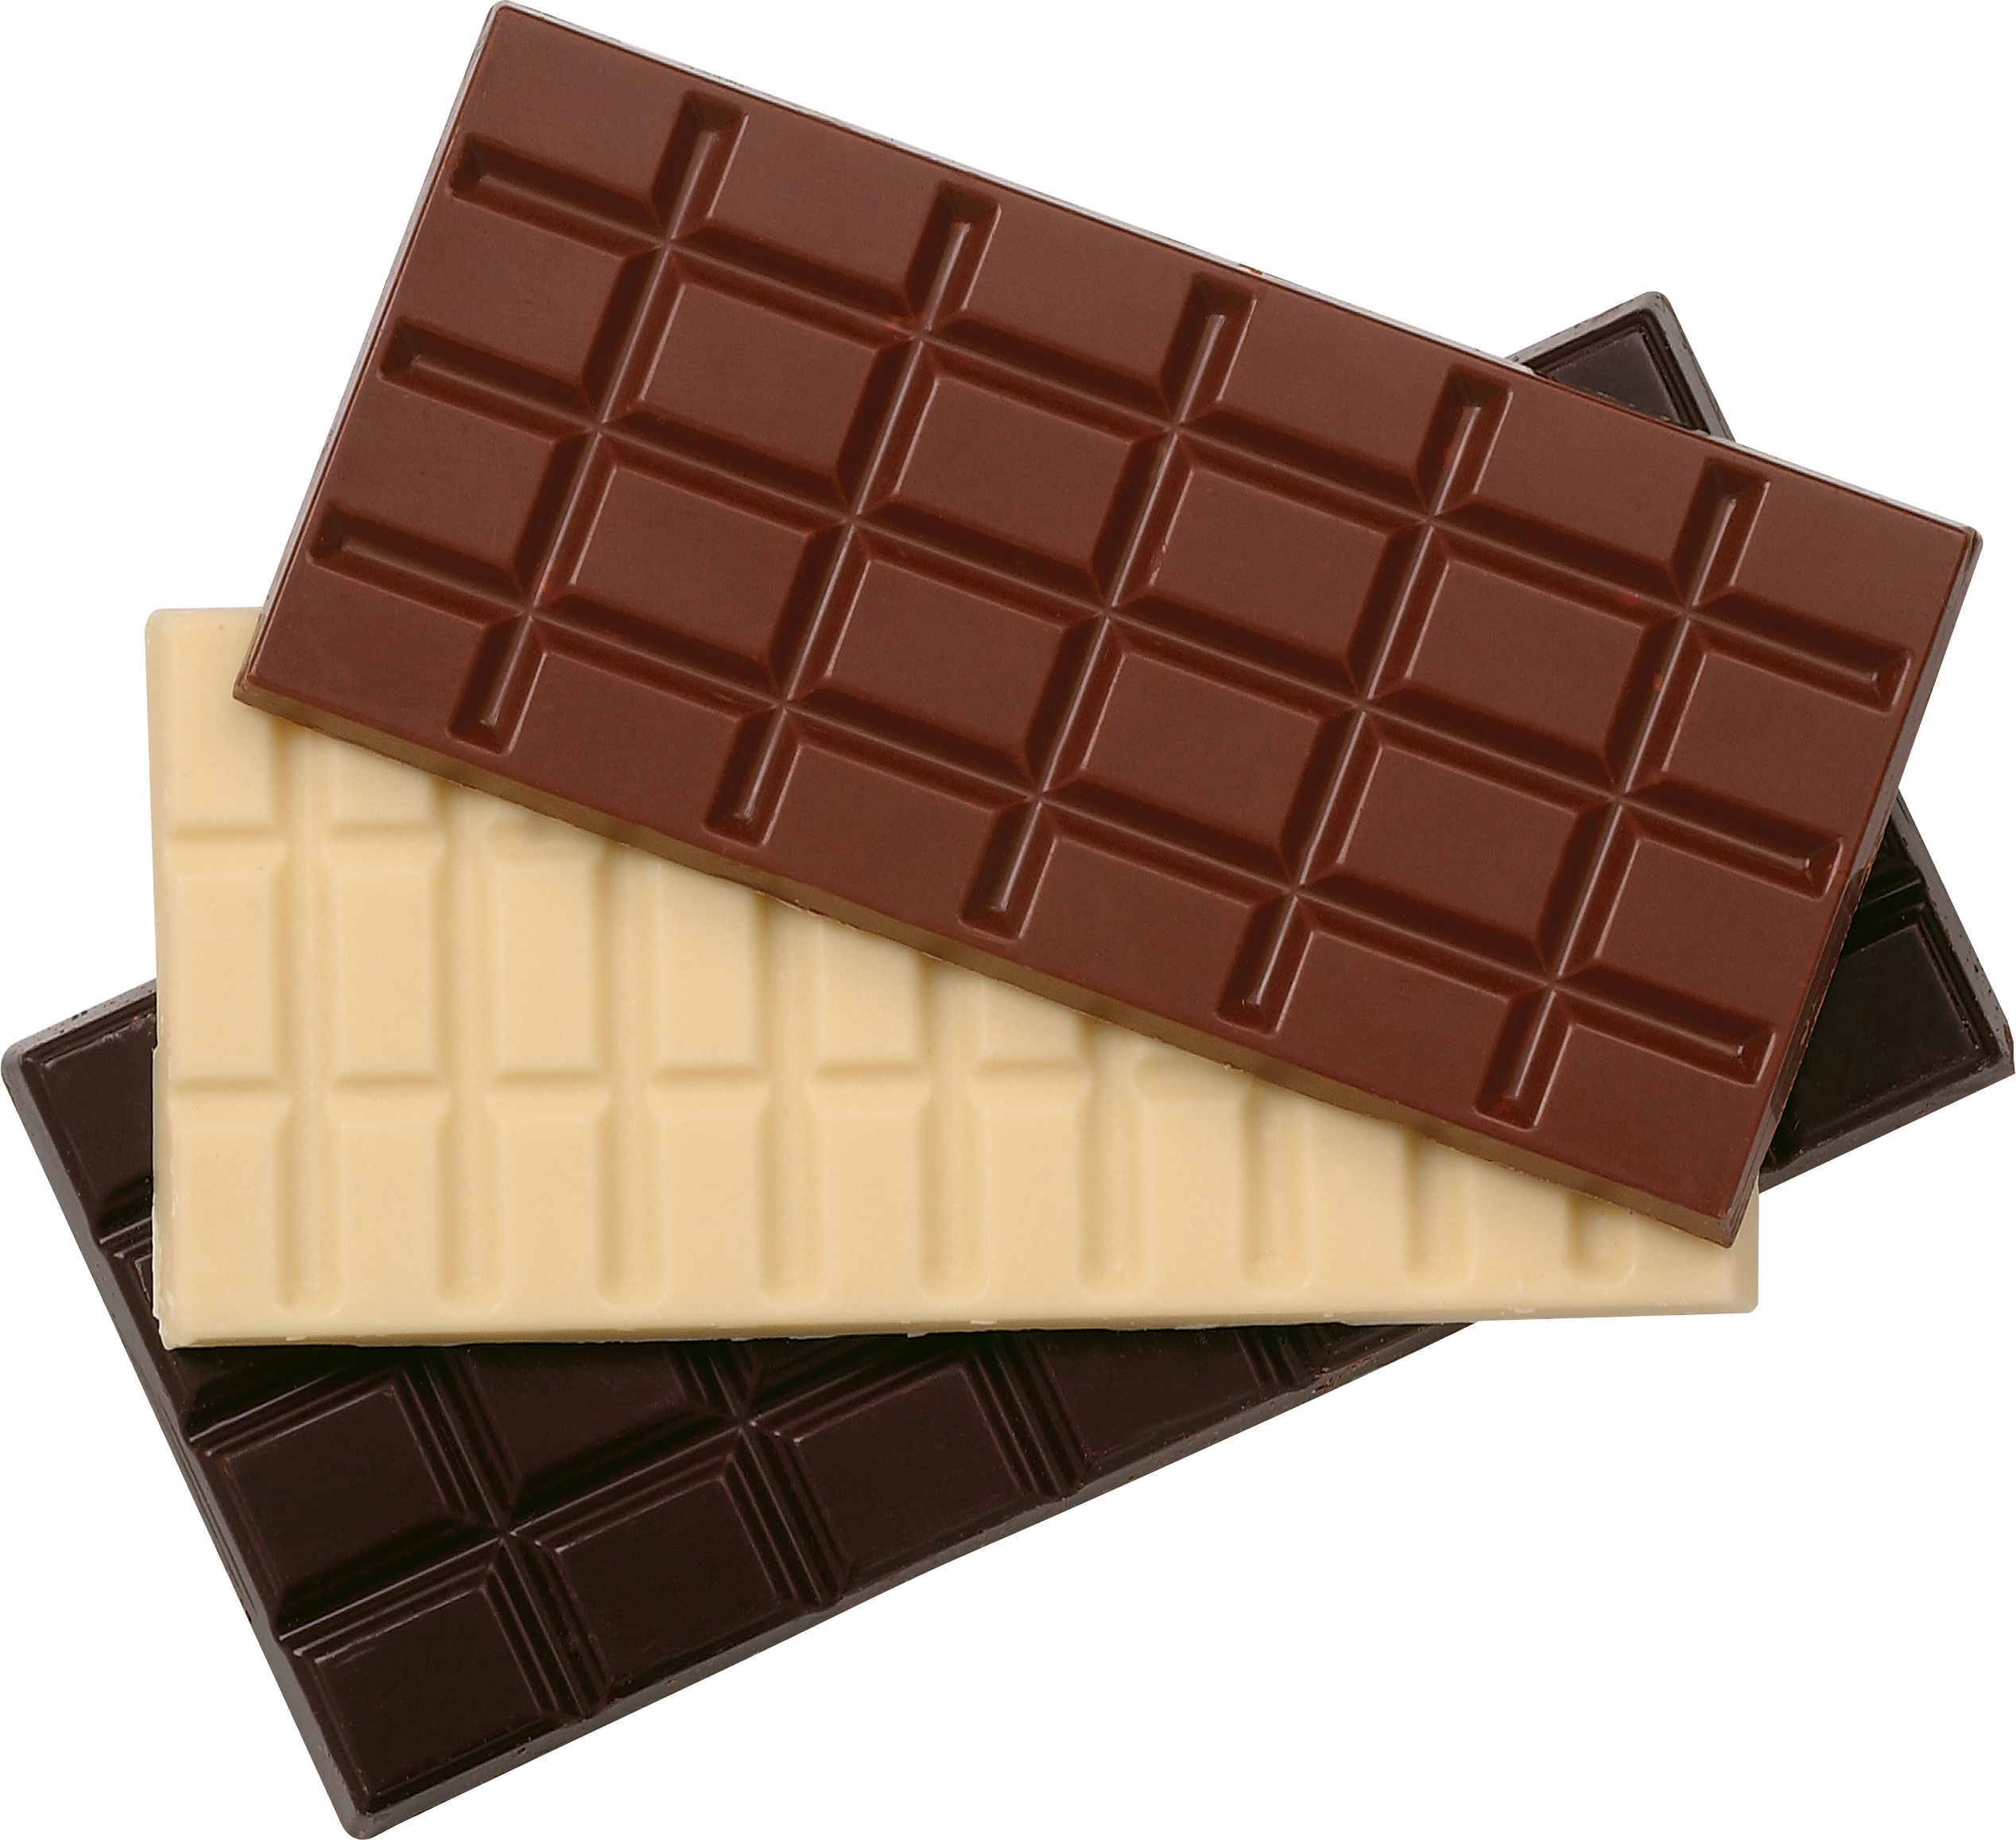 Chocolate bars PNG image - Chocolate Bar HD PNG